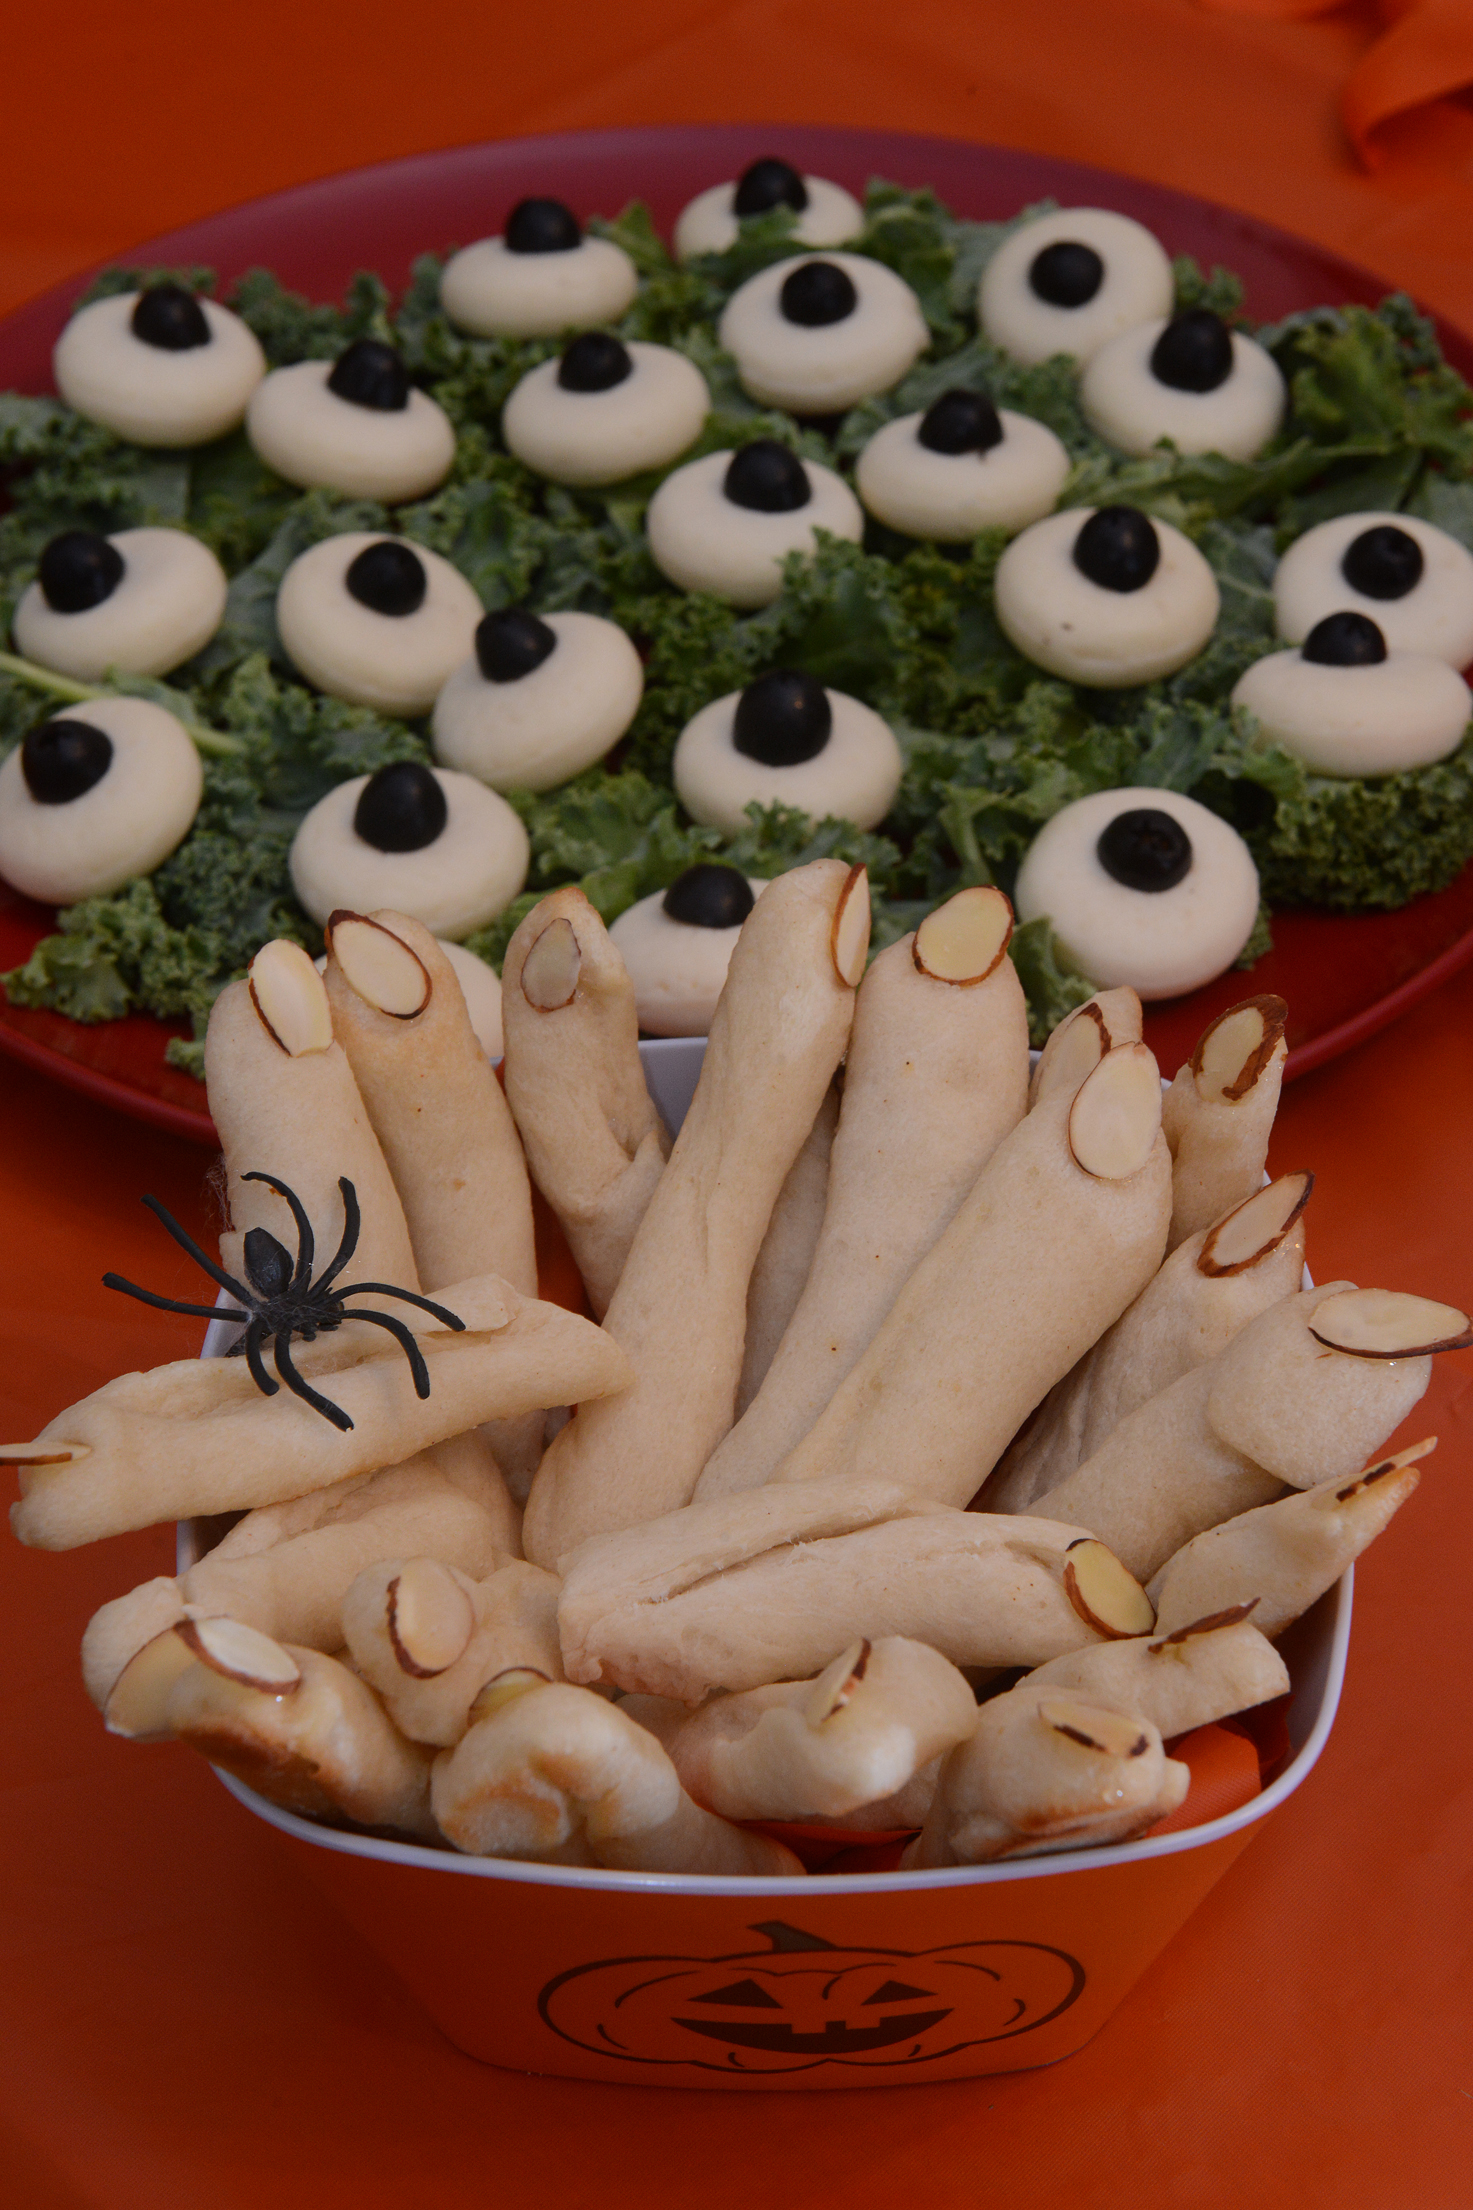 Gnarly fingers Gnarly fingers made of Pillsbury bread sticks and slivered almonds, front, and eyeballs made of Baby Bella cheese and sliced olives .